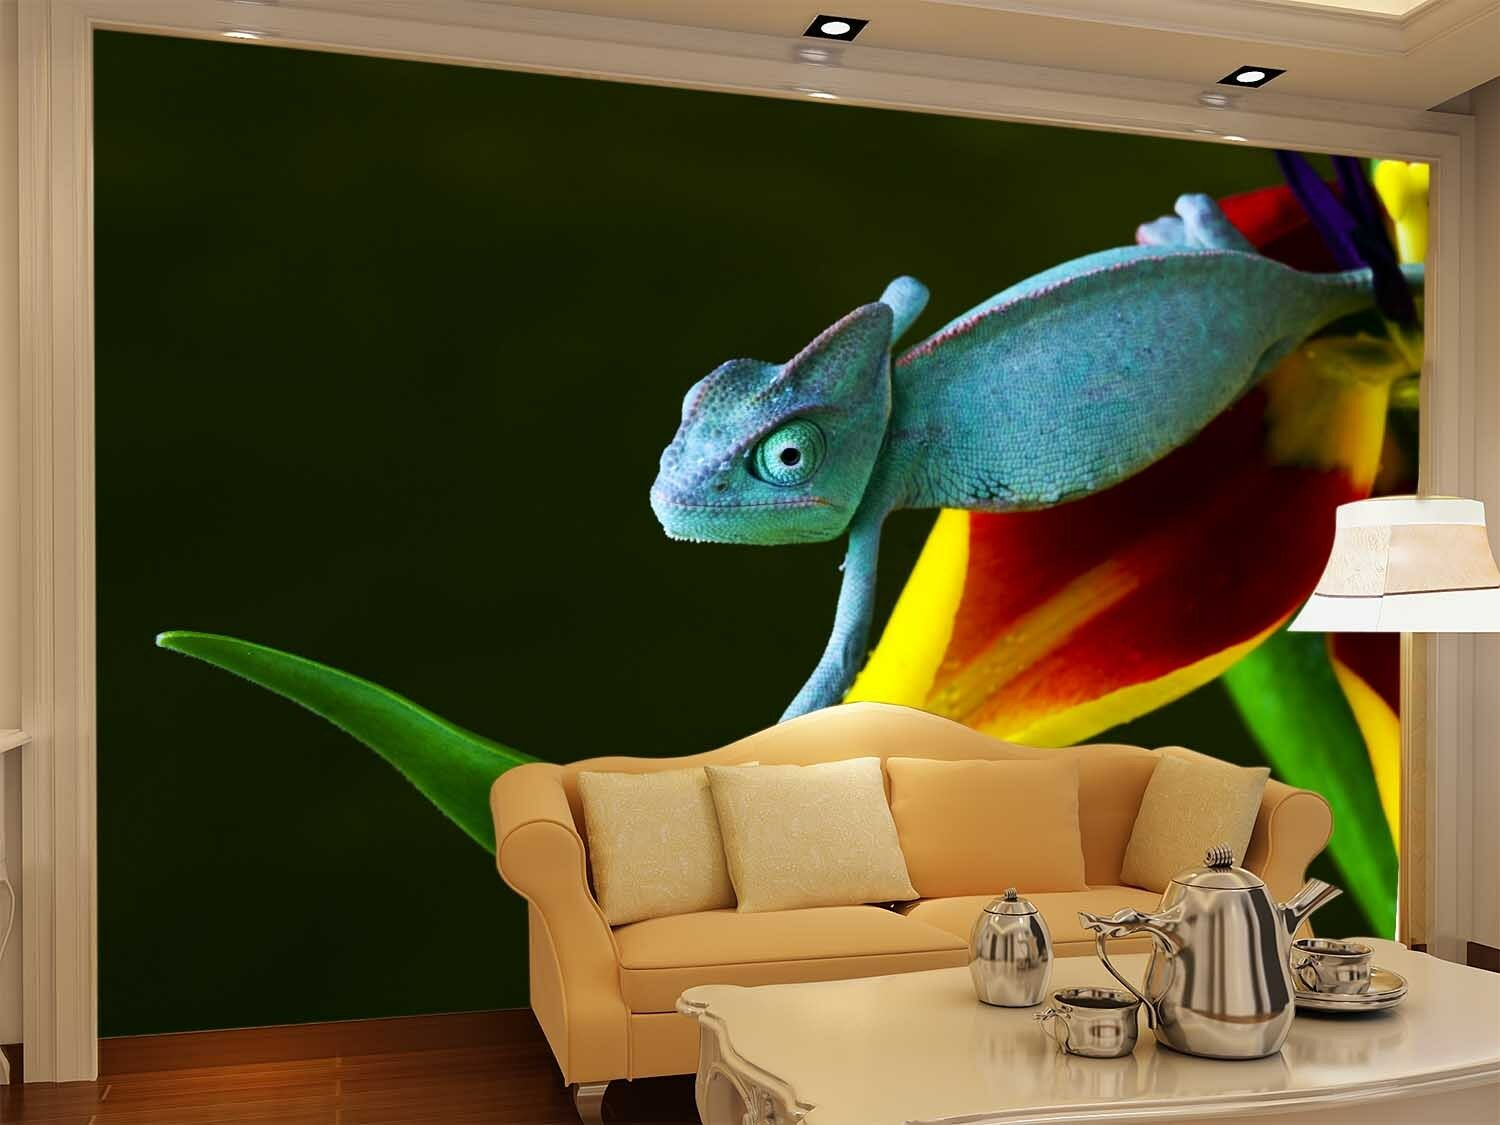 3D Blau Lizard Animals 1WallPaper Murals Wall Print Decal Decal Decal Wall Deco AJ WALLPAPER 02b304